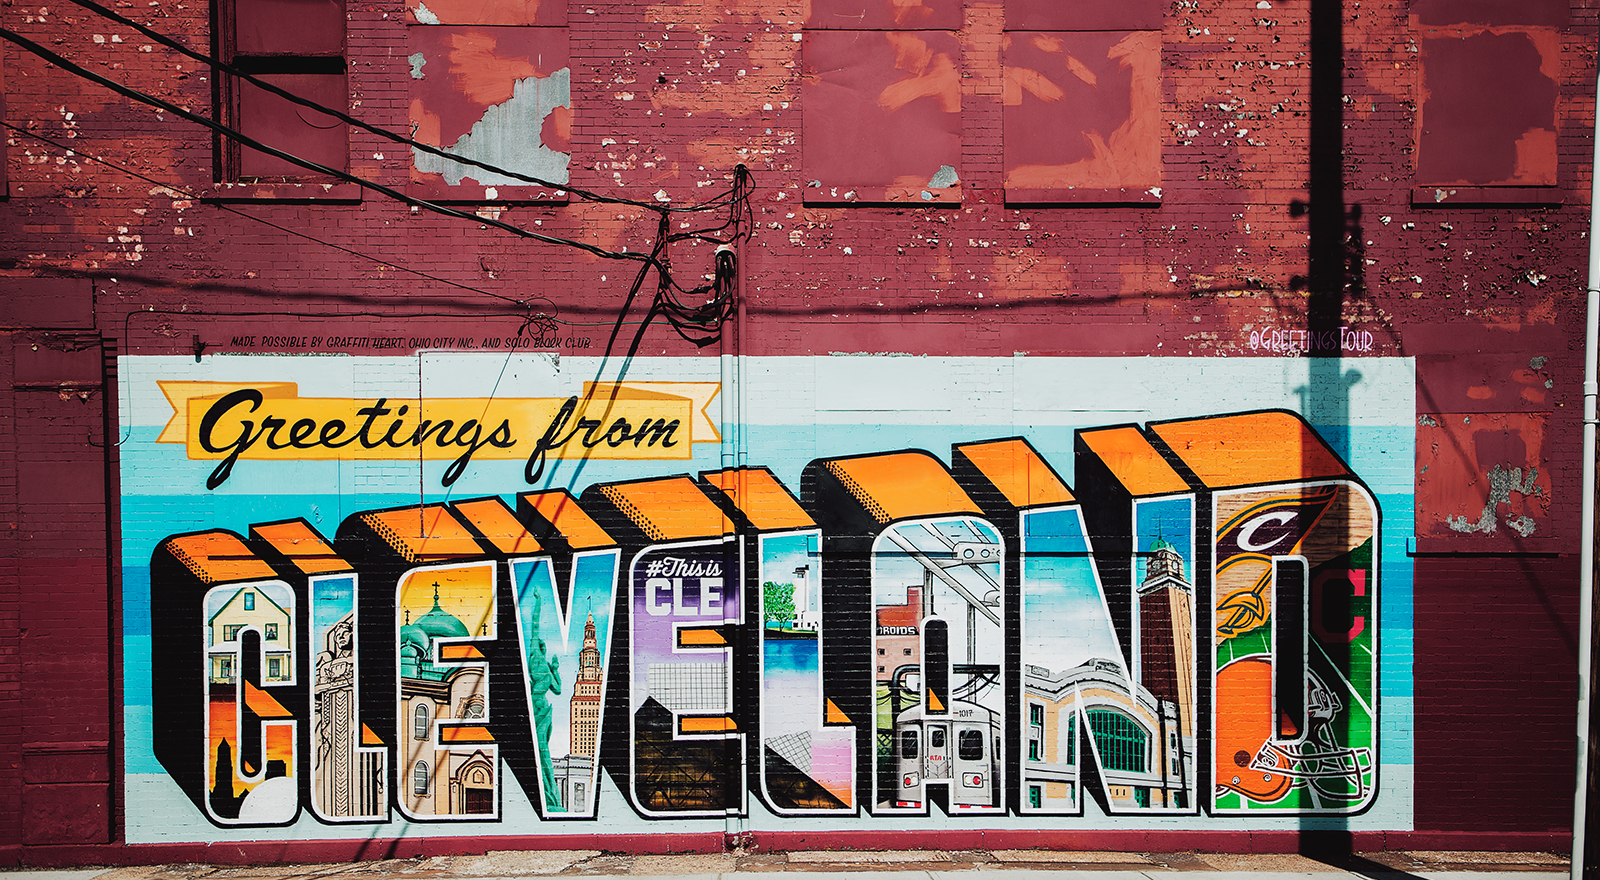 Cleveland wall mural